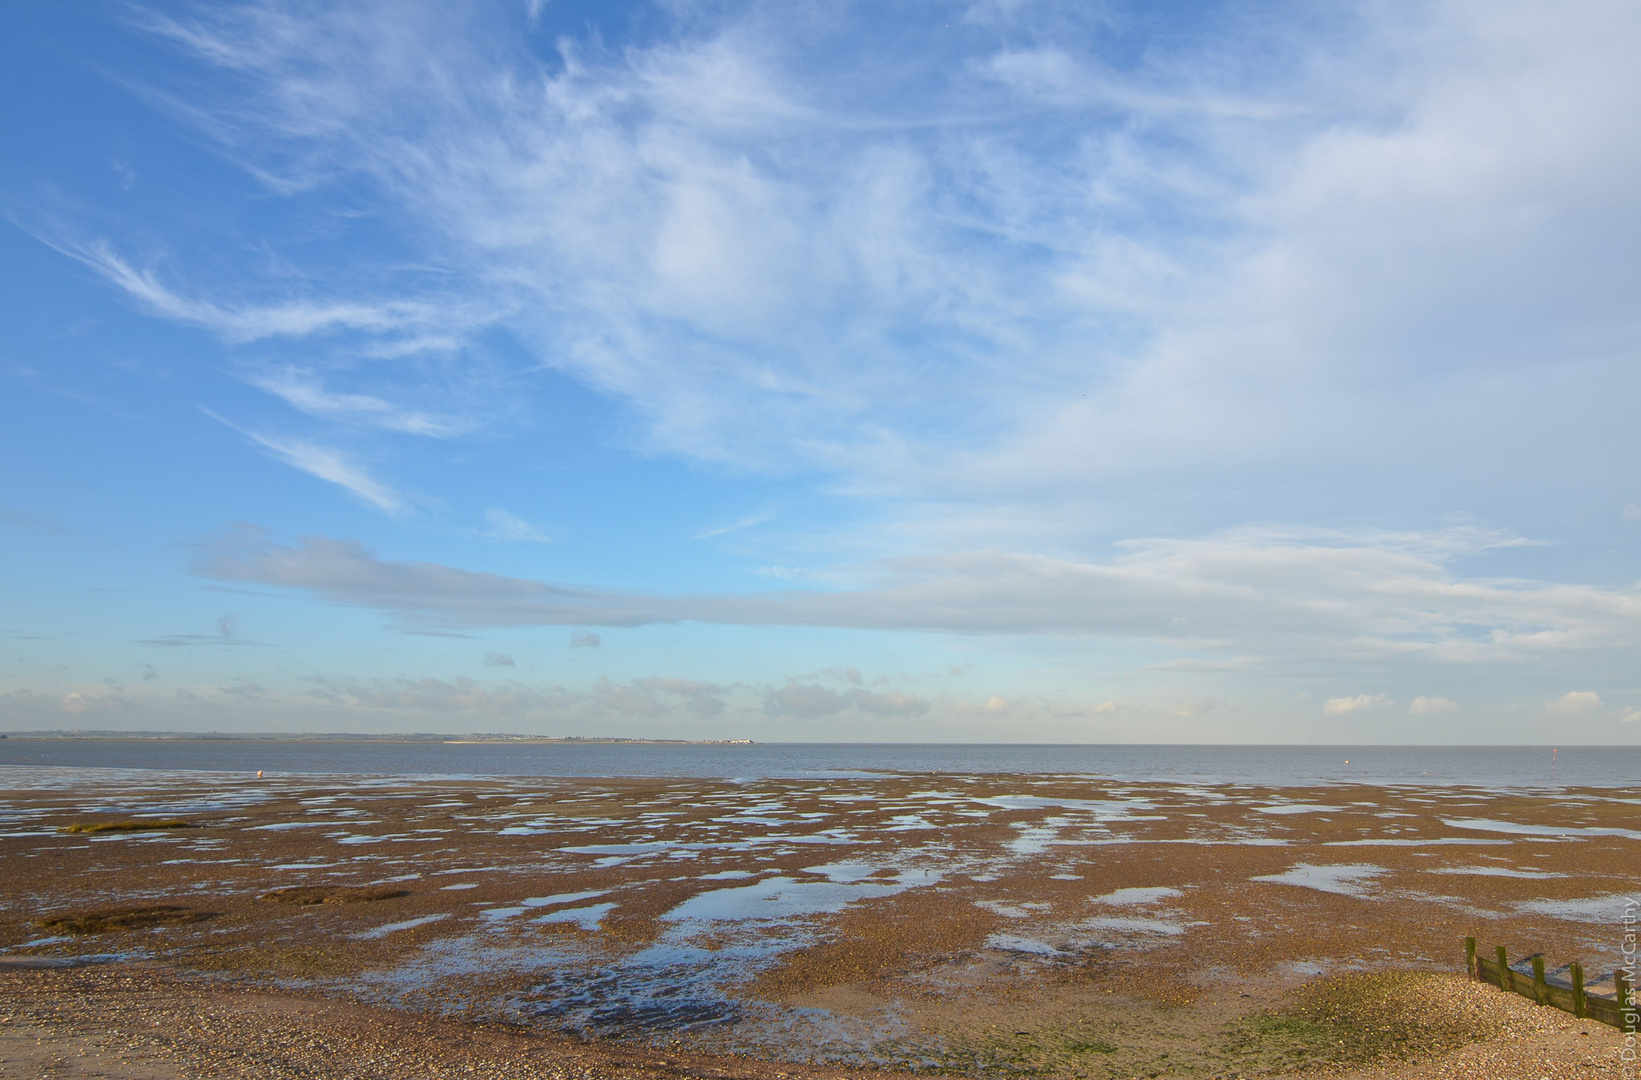 dmc_20111217_faversham_1874.jpg